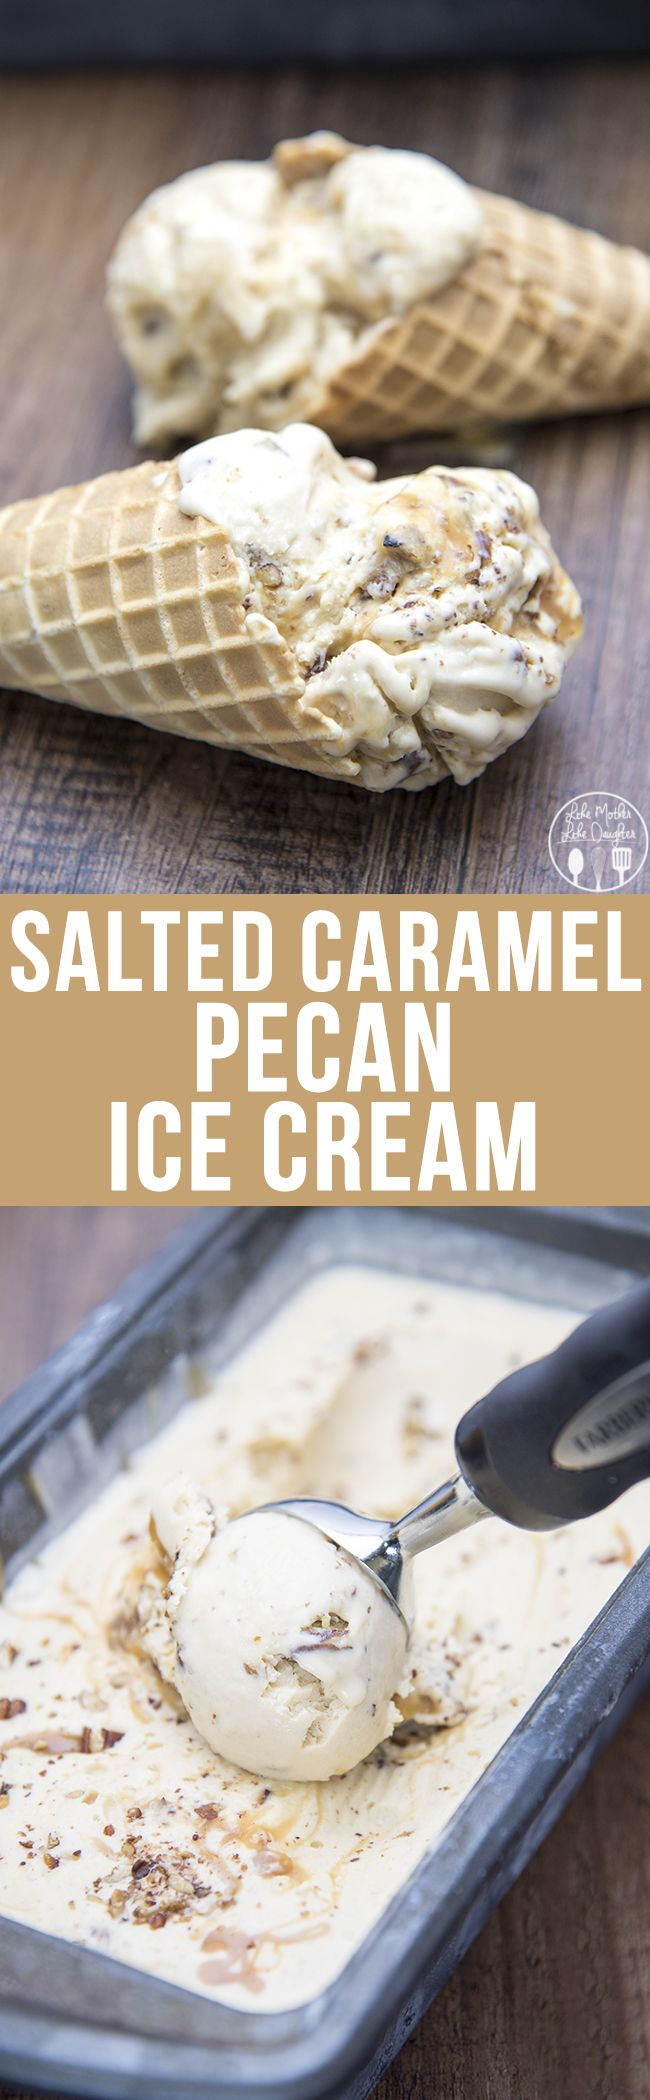 Salted Caramel Pecan Ice Cream - This Salted Caramel Pecan Ice Cream has a salted caramel custard base, swirled with salted caramel swirls and full of crunchy toasted pecans. Its perfectly rich, creamy and so delicious!